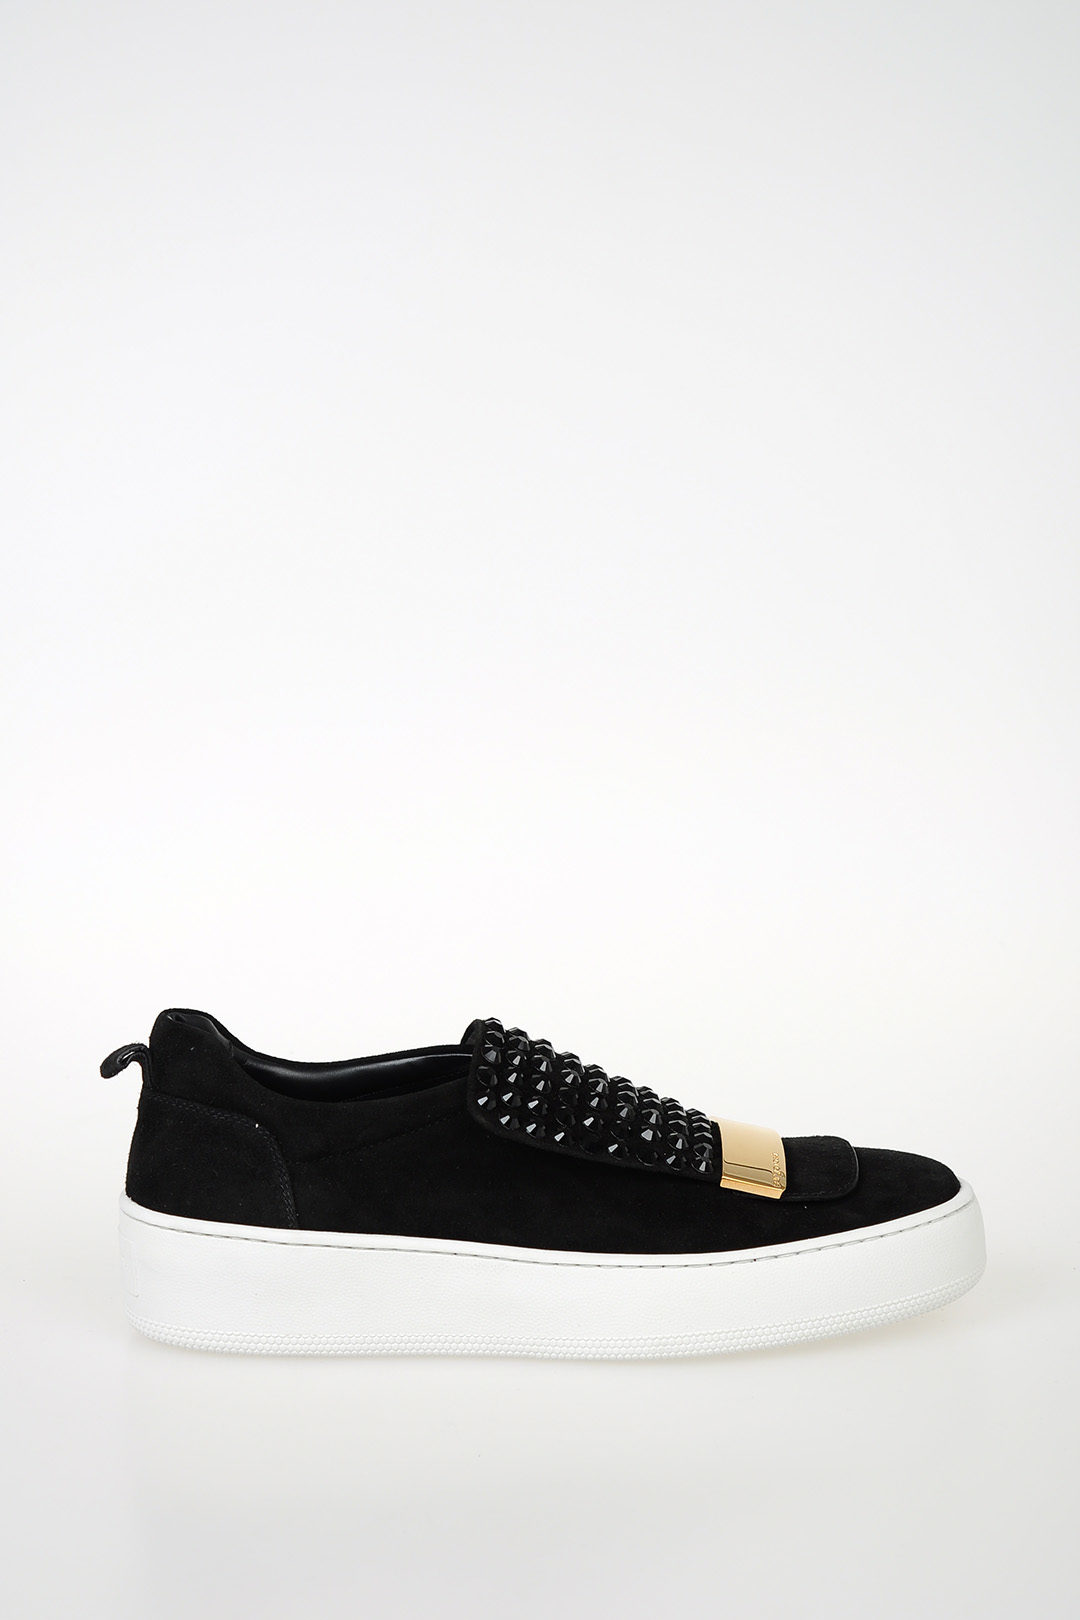 11178e7f4 Sergio Rossi Slip on with Studs women - Glamood Outlet